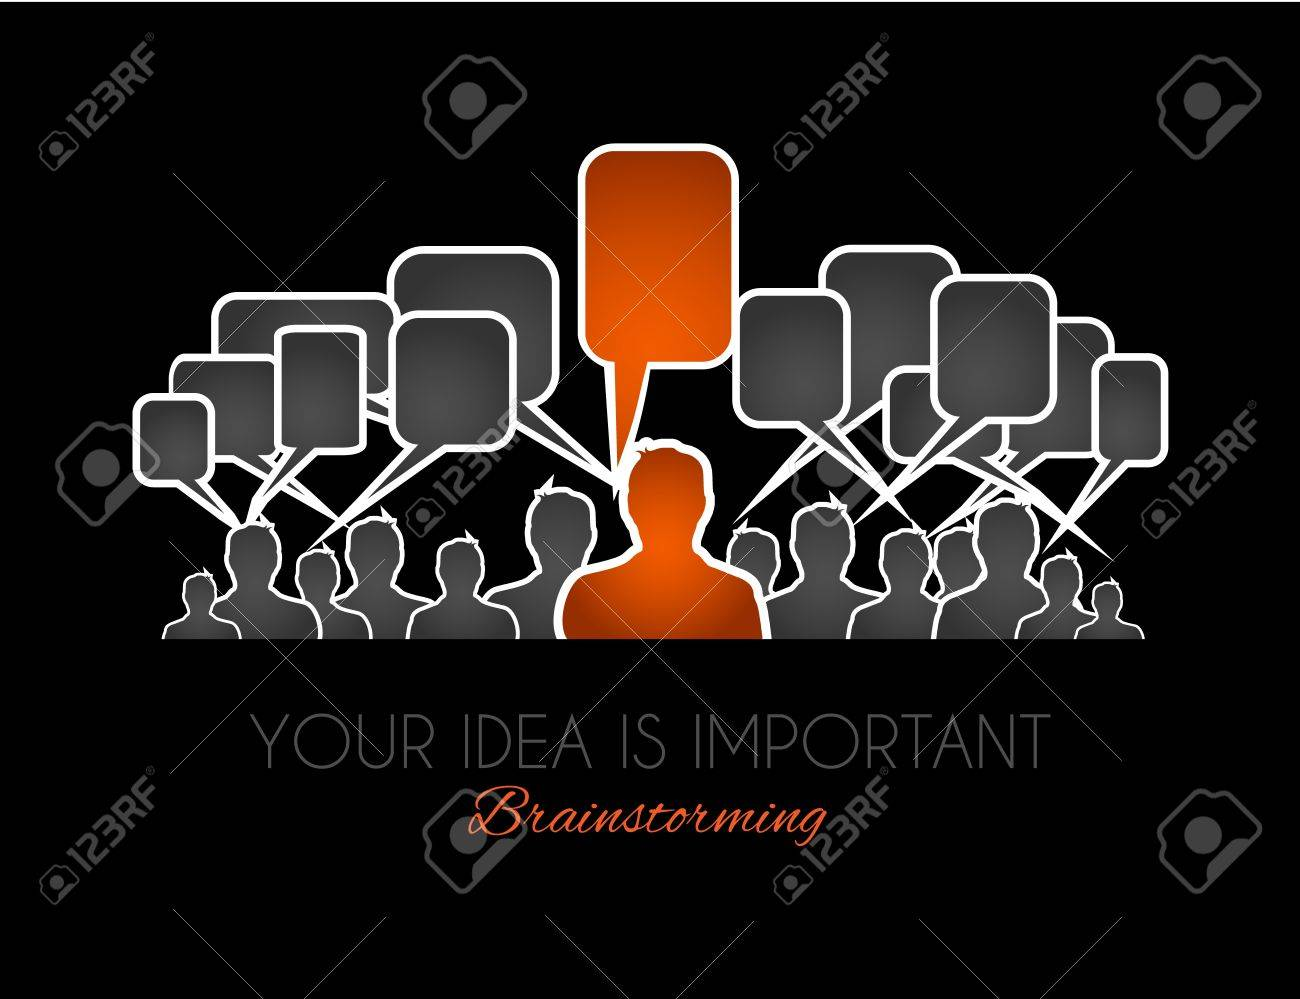 Worldwide communication and social media concept art. People communicating around the globe with a lot of connections. Stock Vector - 21598860